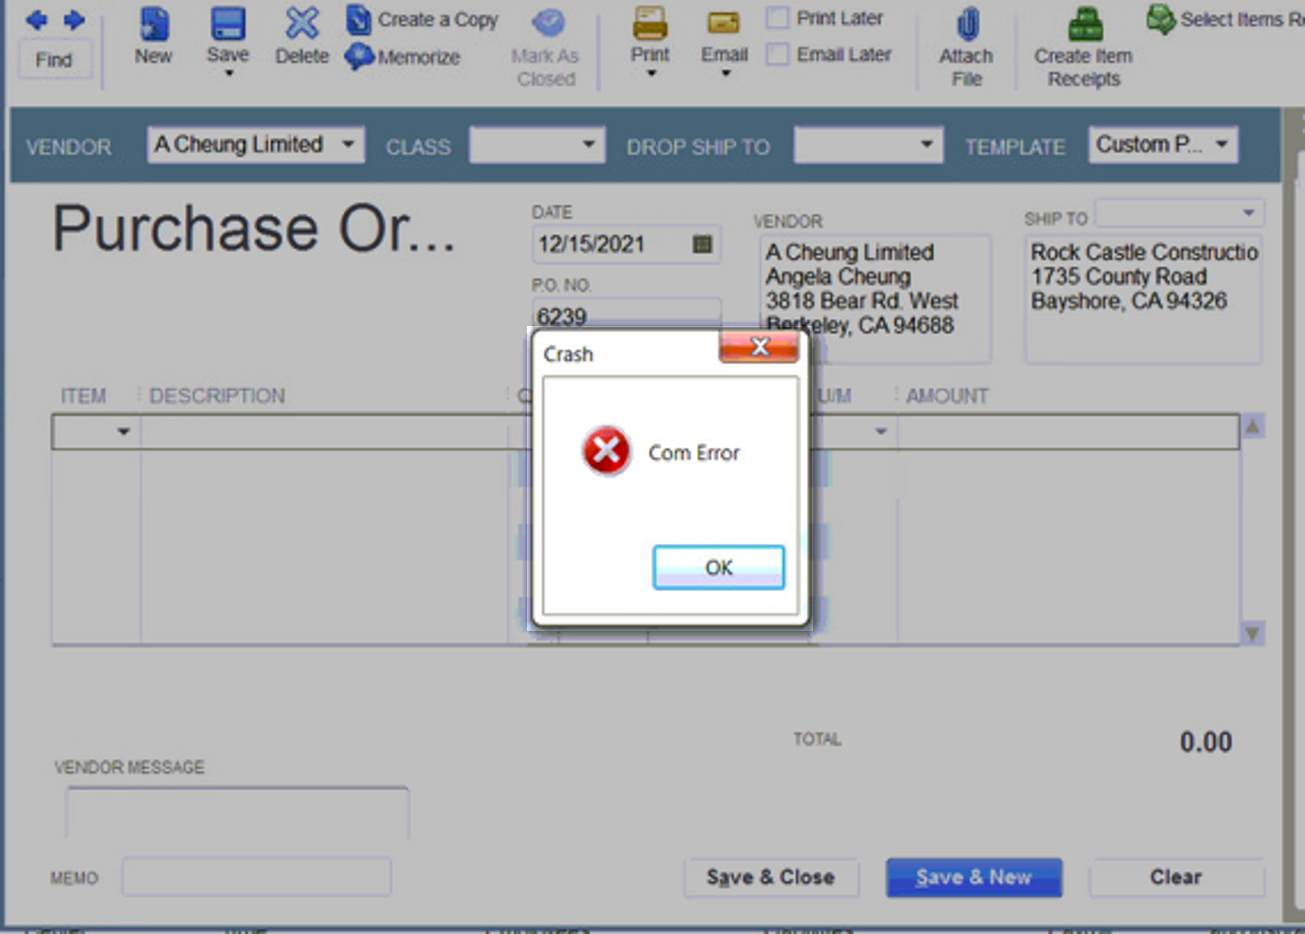 Crash: Com Error in QuickBooks Desktop - QuickBooks Community